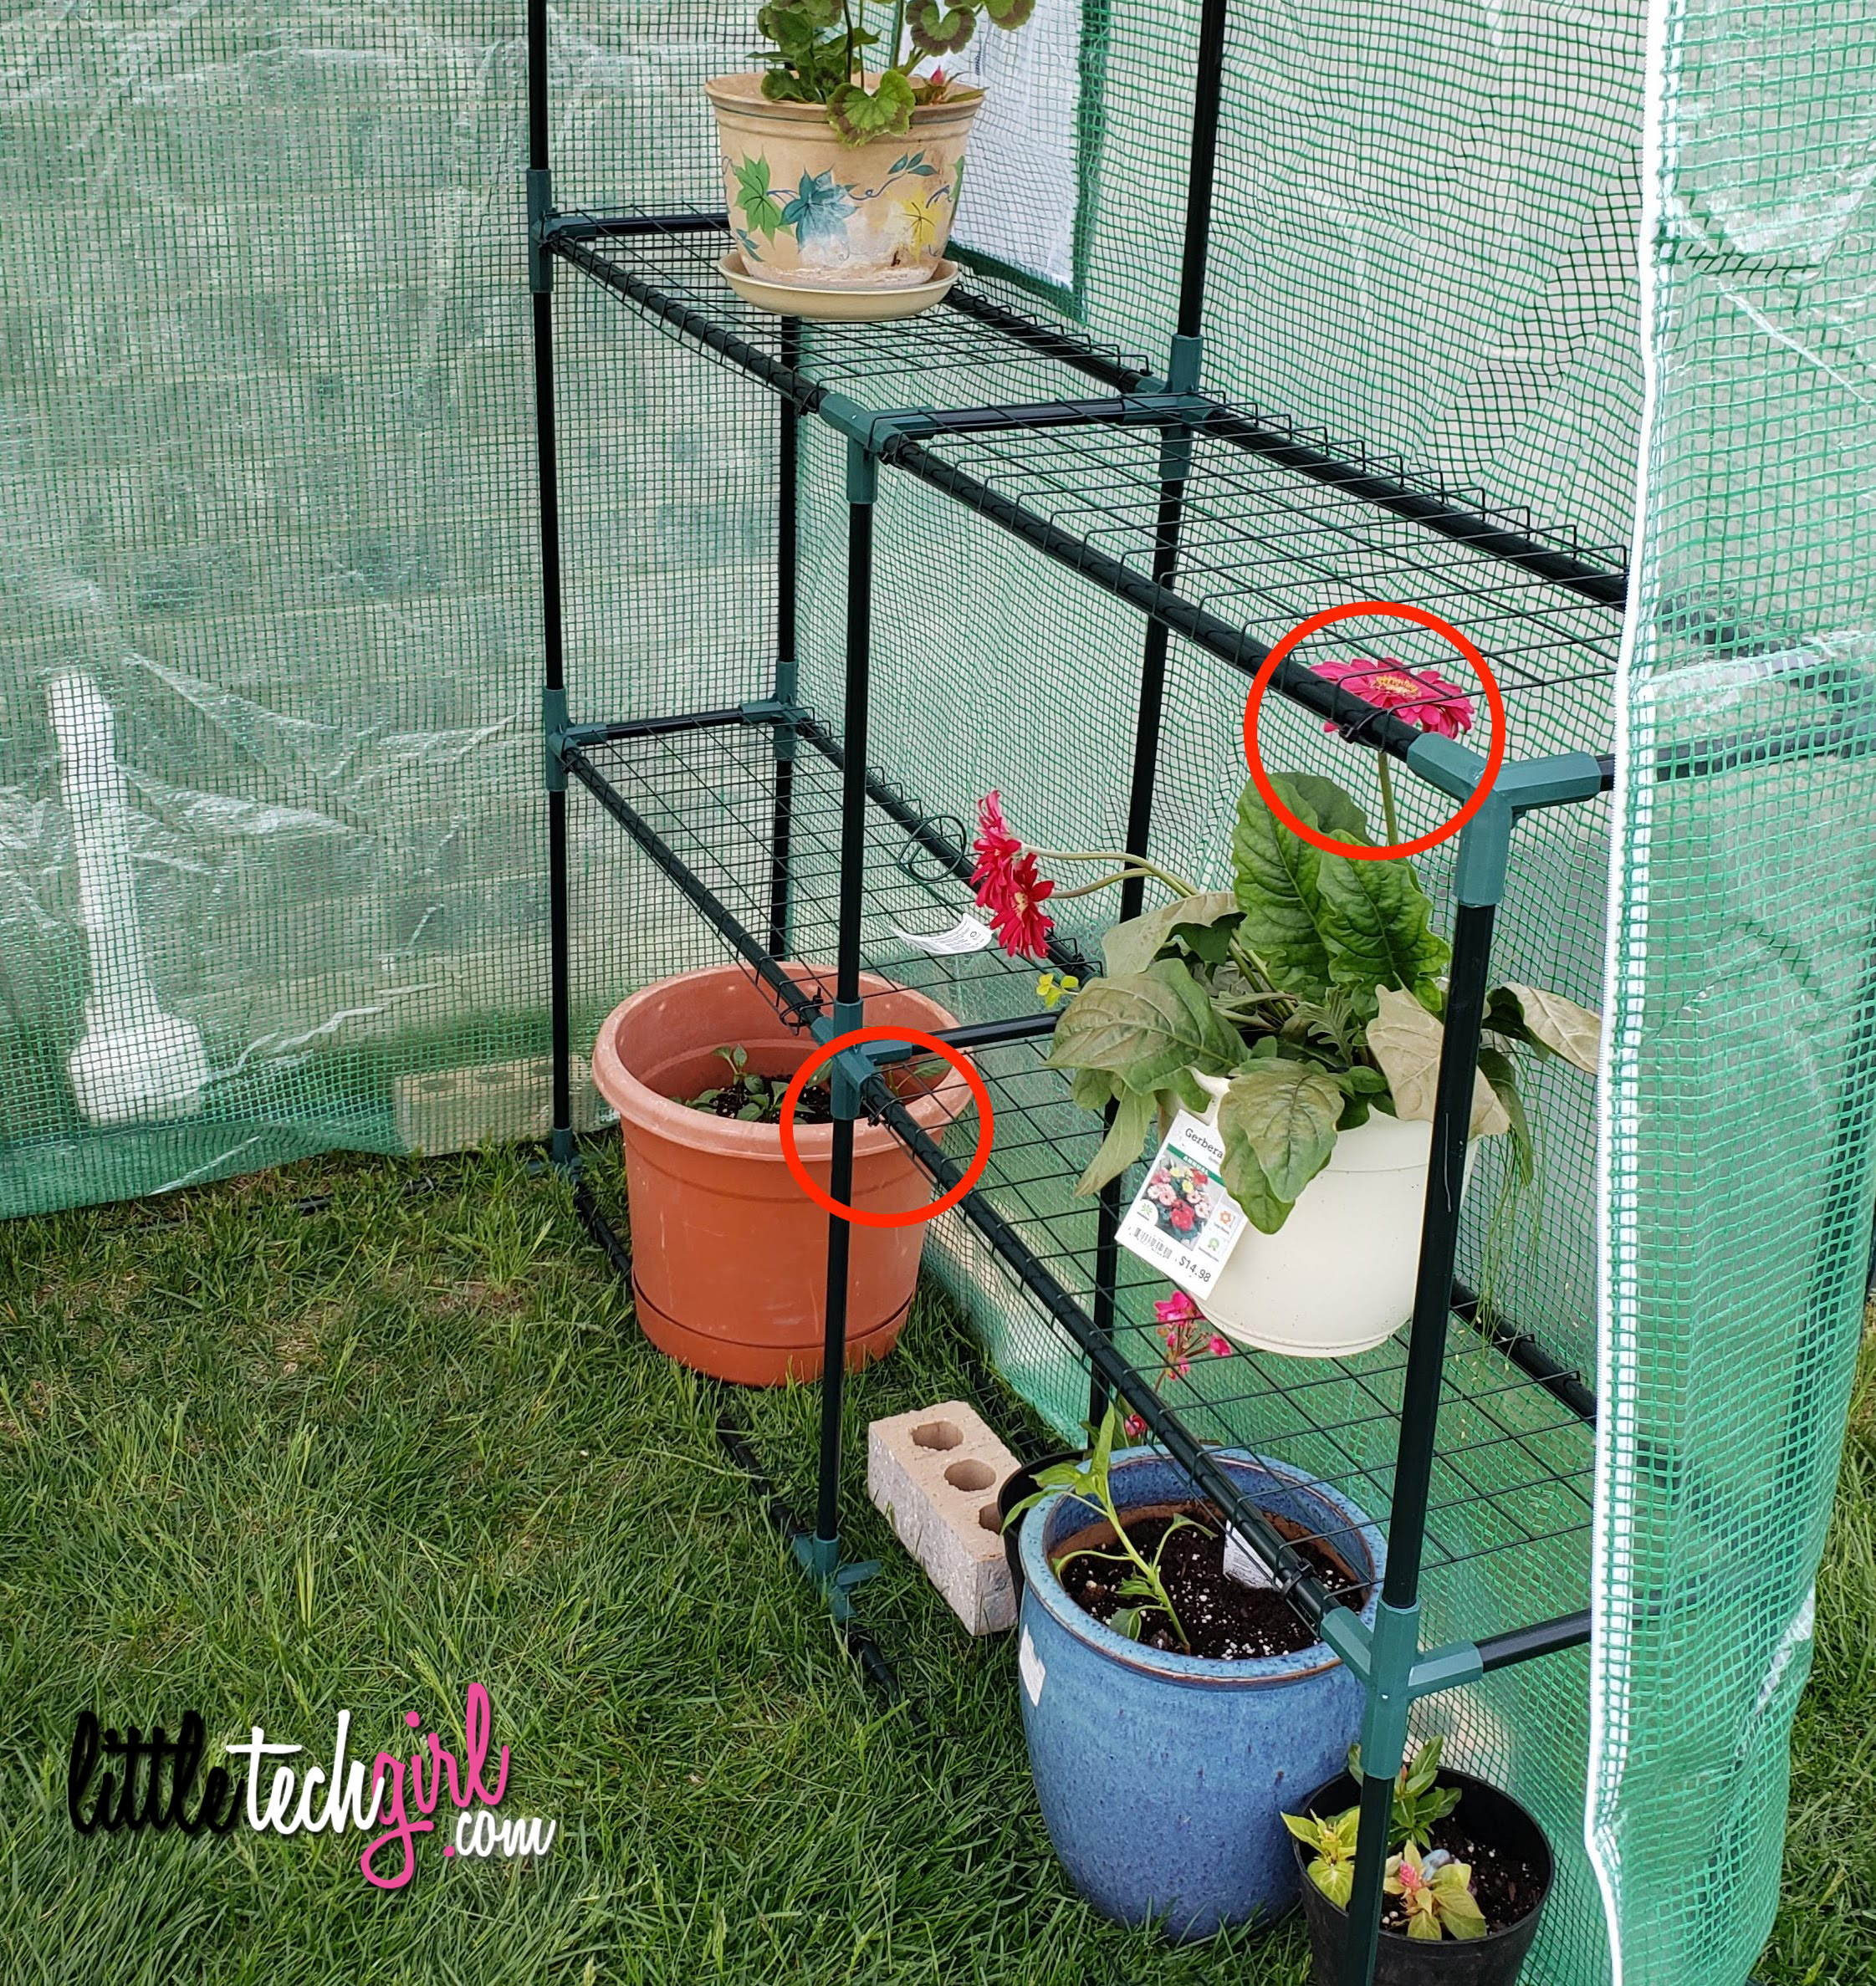 Greenhouse zip ties to keep shelves in place